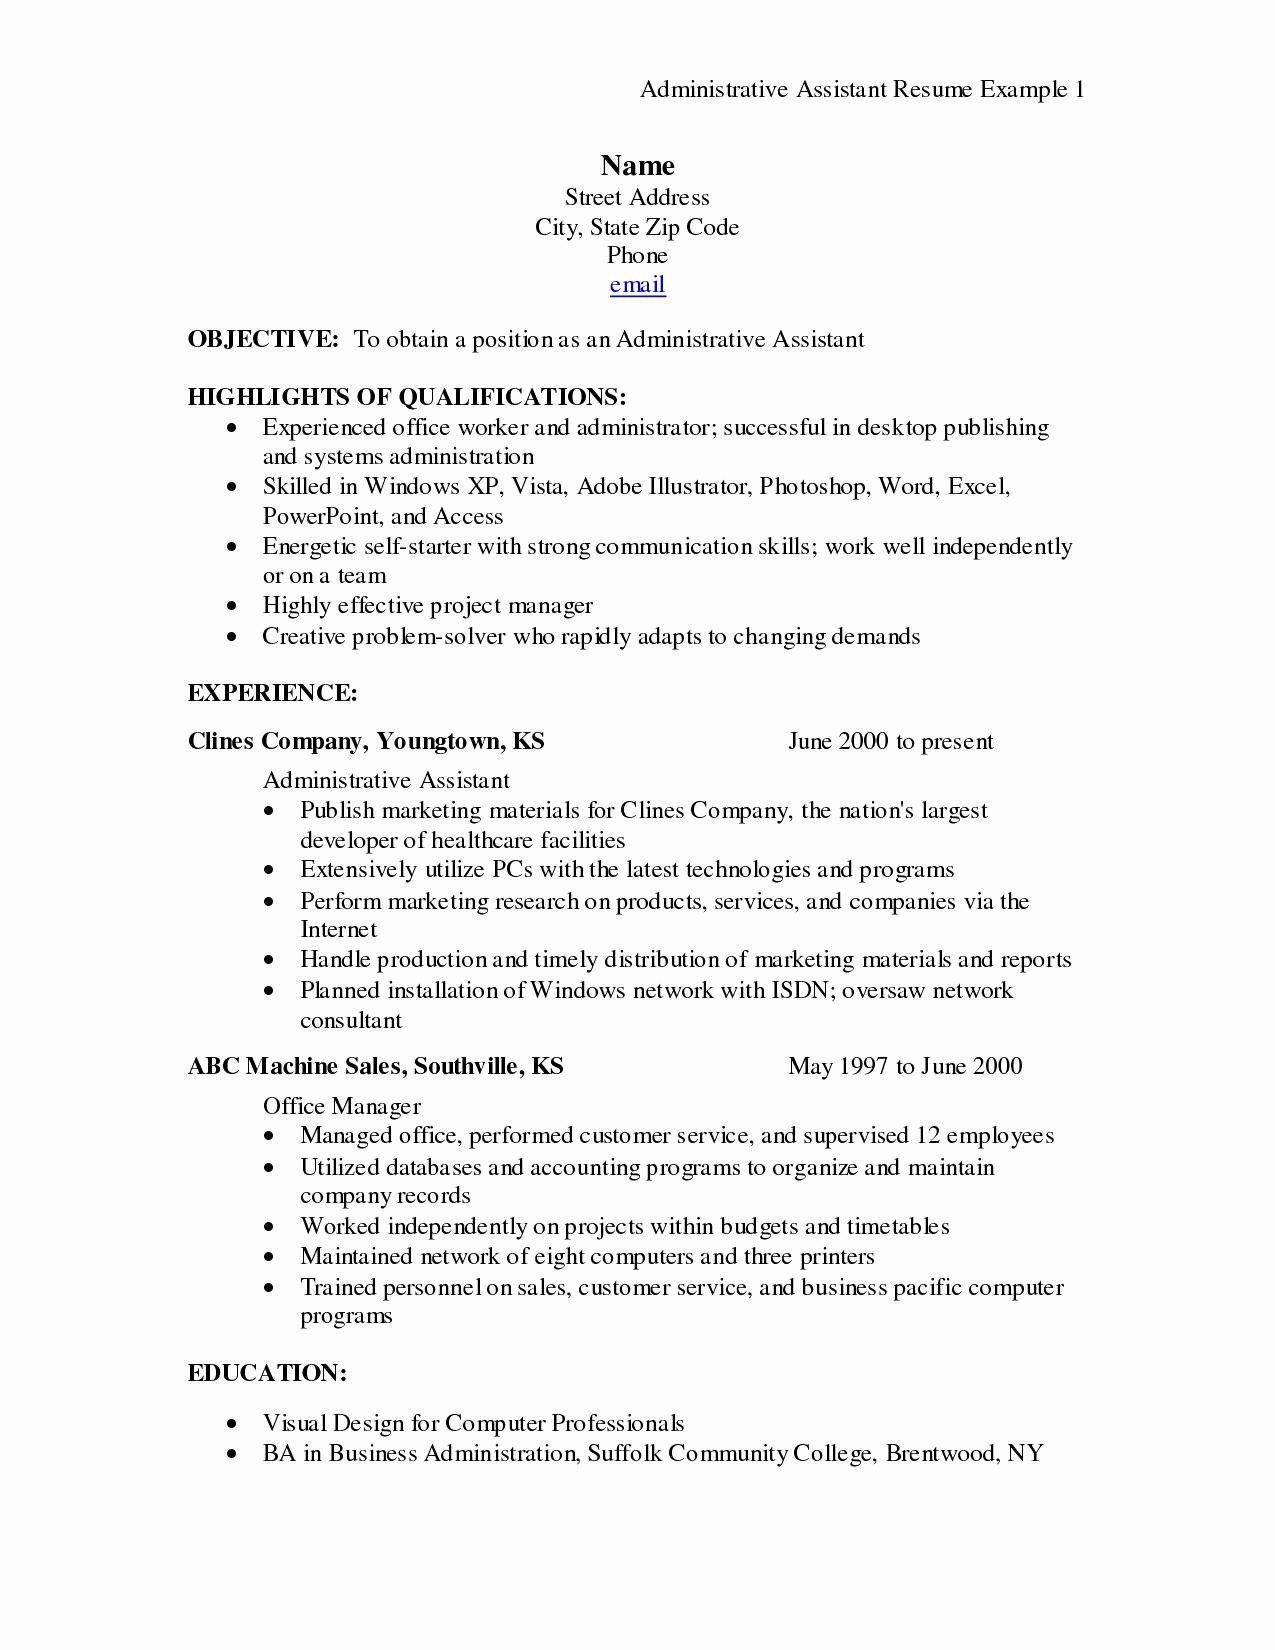 medical administrative assistant resume sample new tem examples template samples network Resume Administrative Assistant Resume Samples 2020